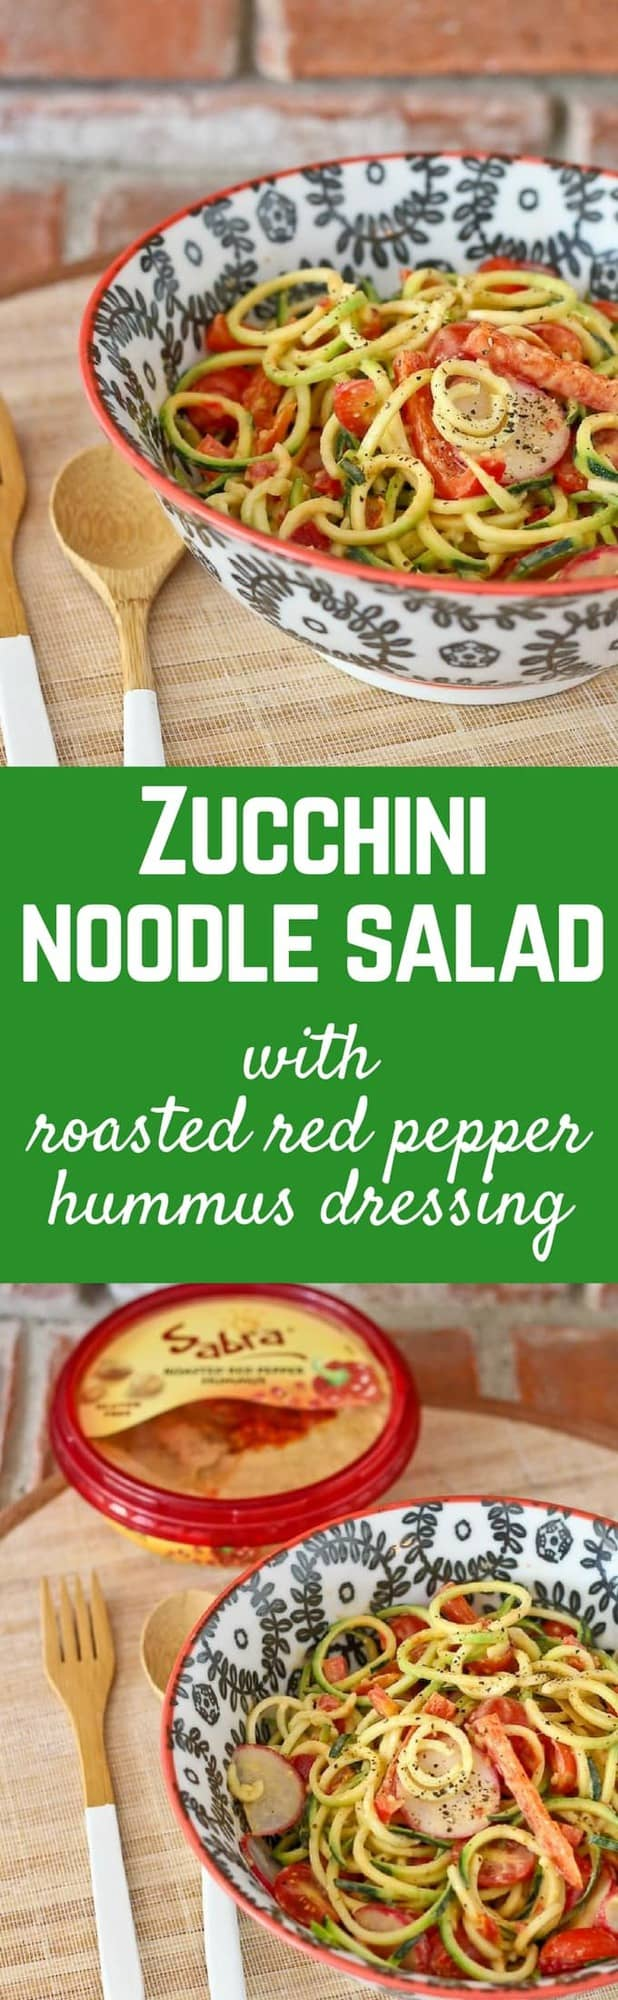 Zucchini Noodle Salad with Roasted Red Pepper Hummus Dressing - get the easy salad recipe on RachelCooks.com!